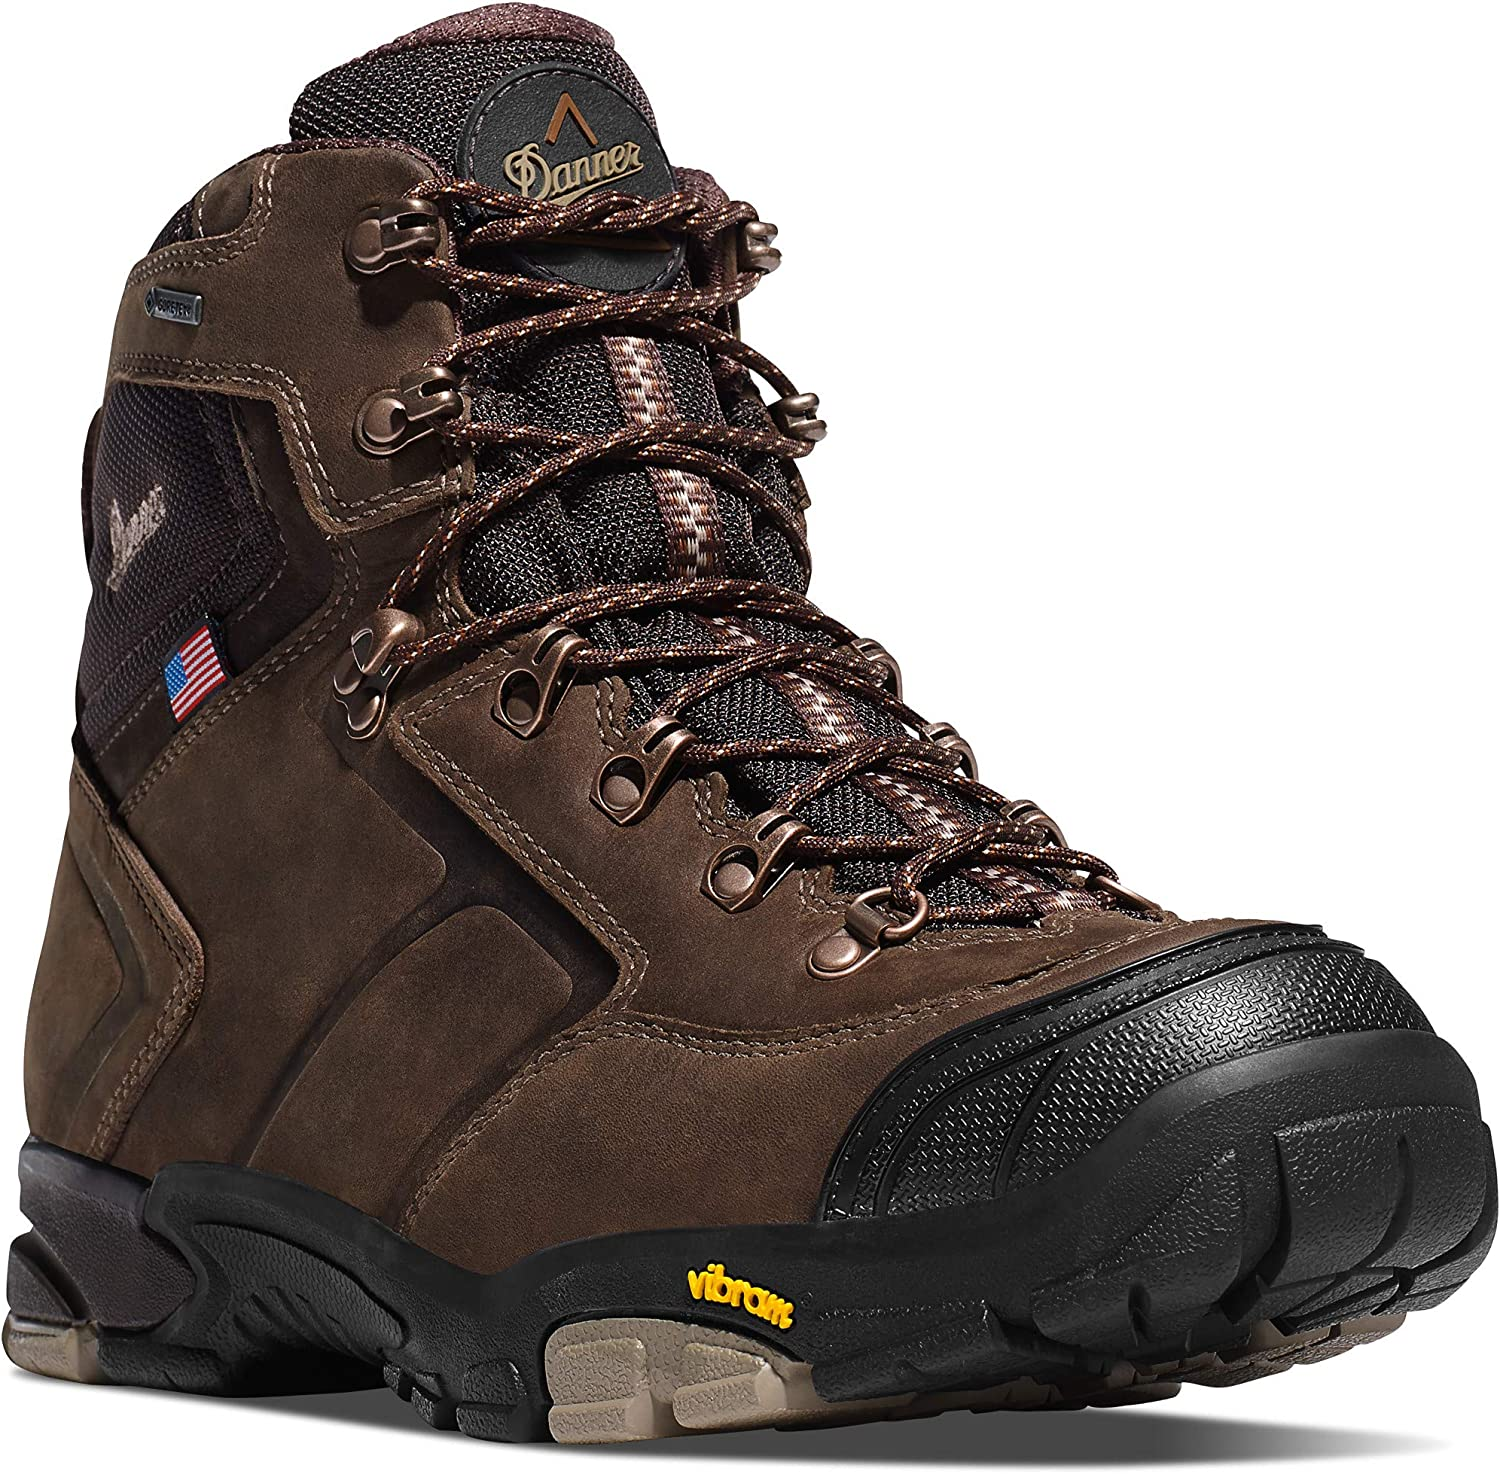 Danner Gore Tex Hiking Boots